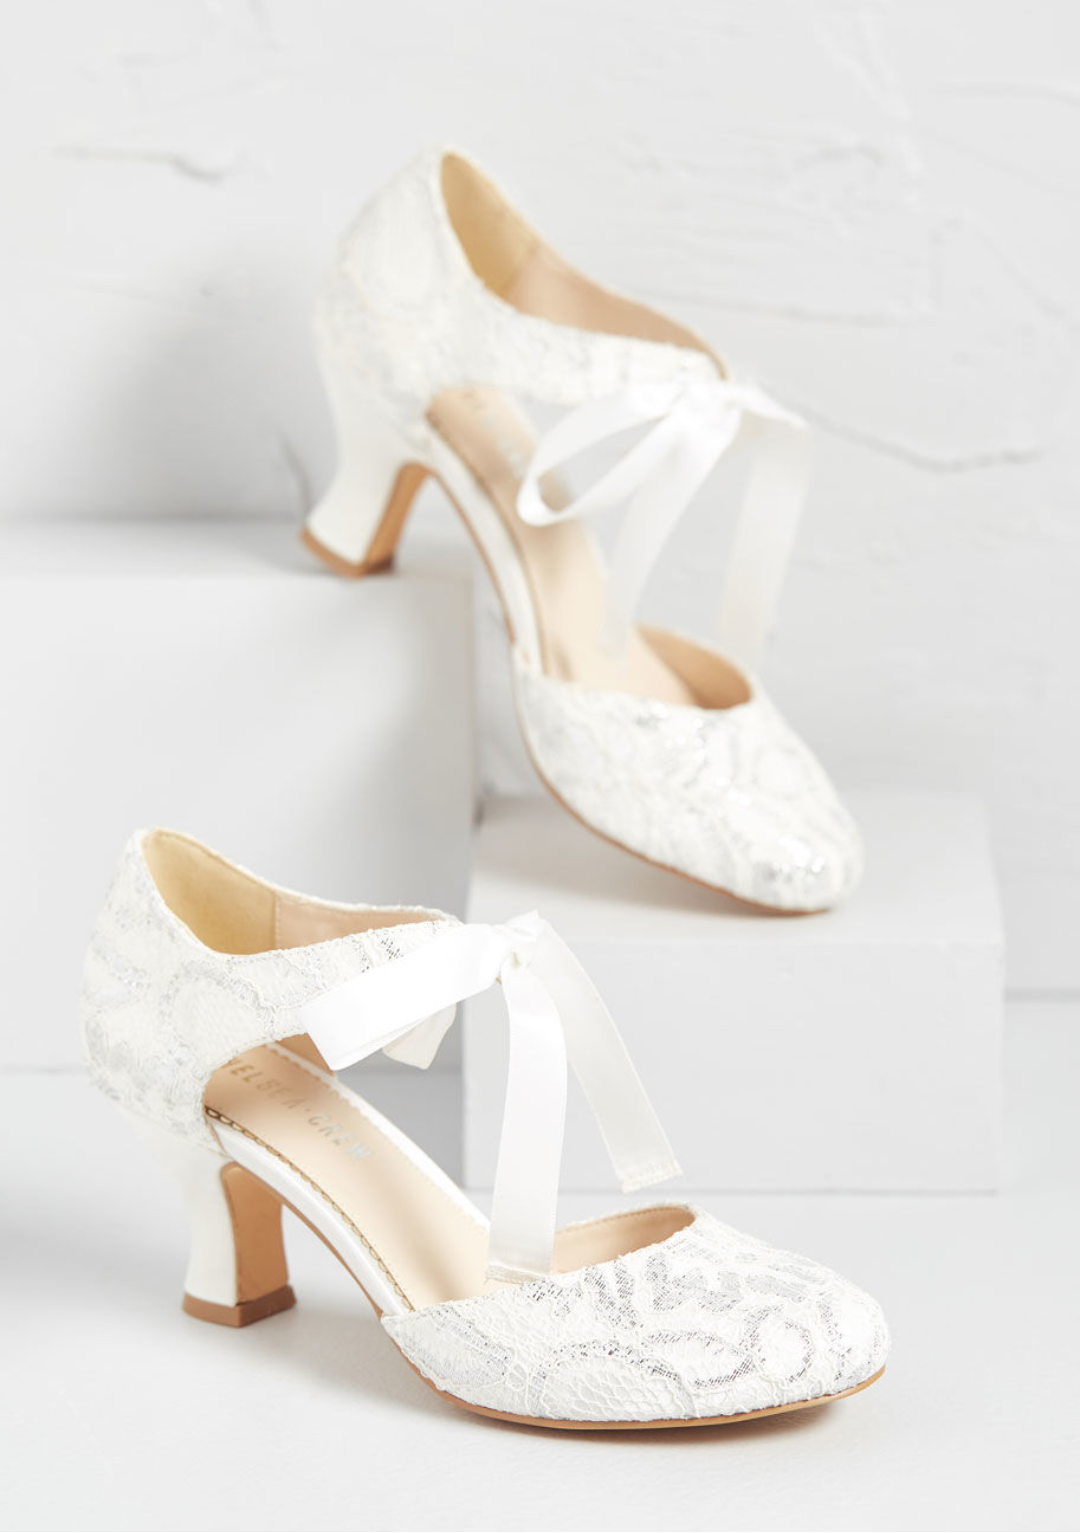 Chelsea Crew White Lace and Silver Heels